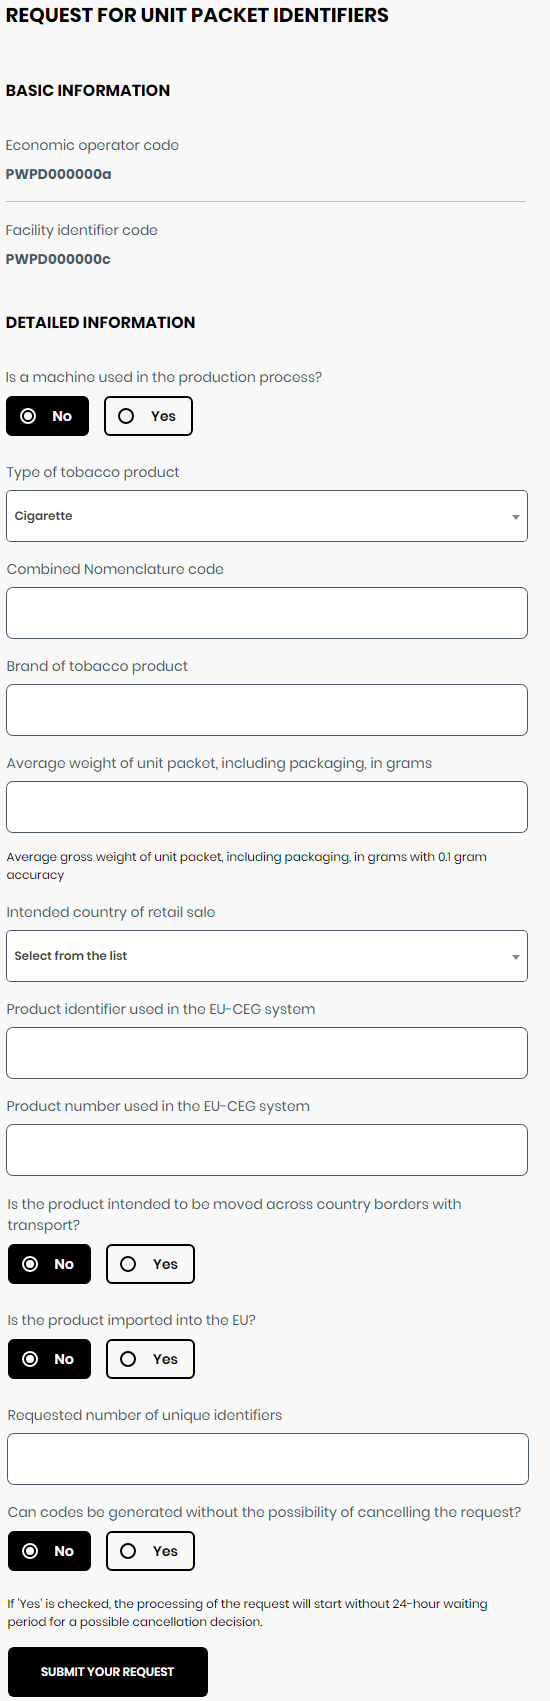 Application for unit pack identifiers